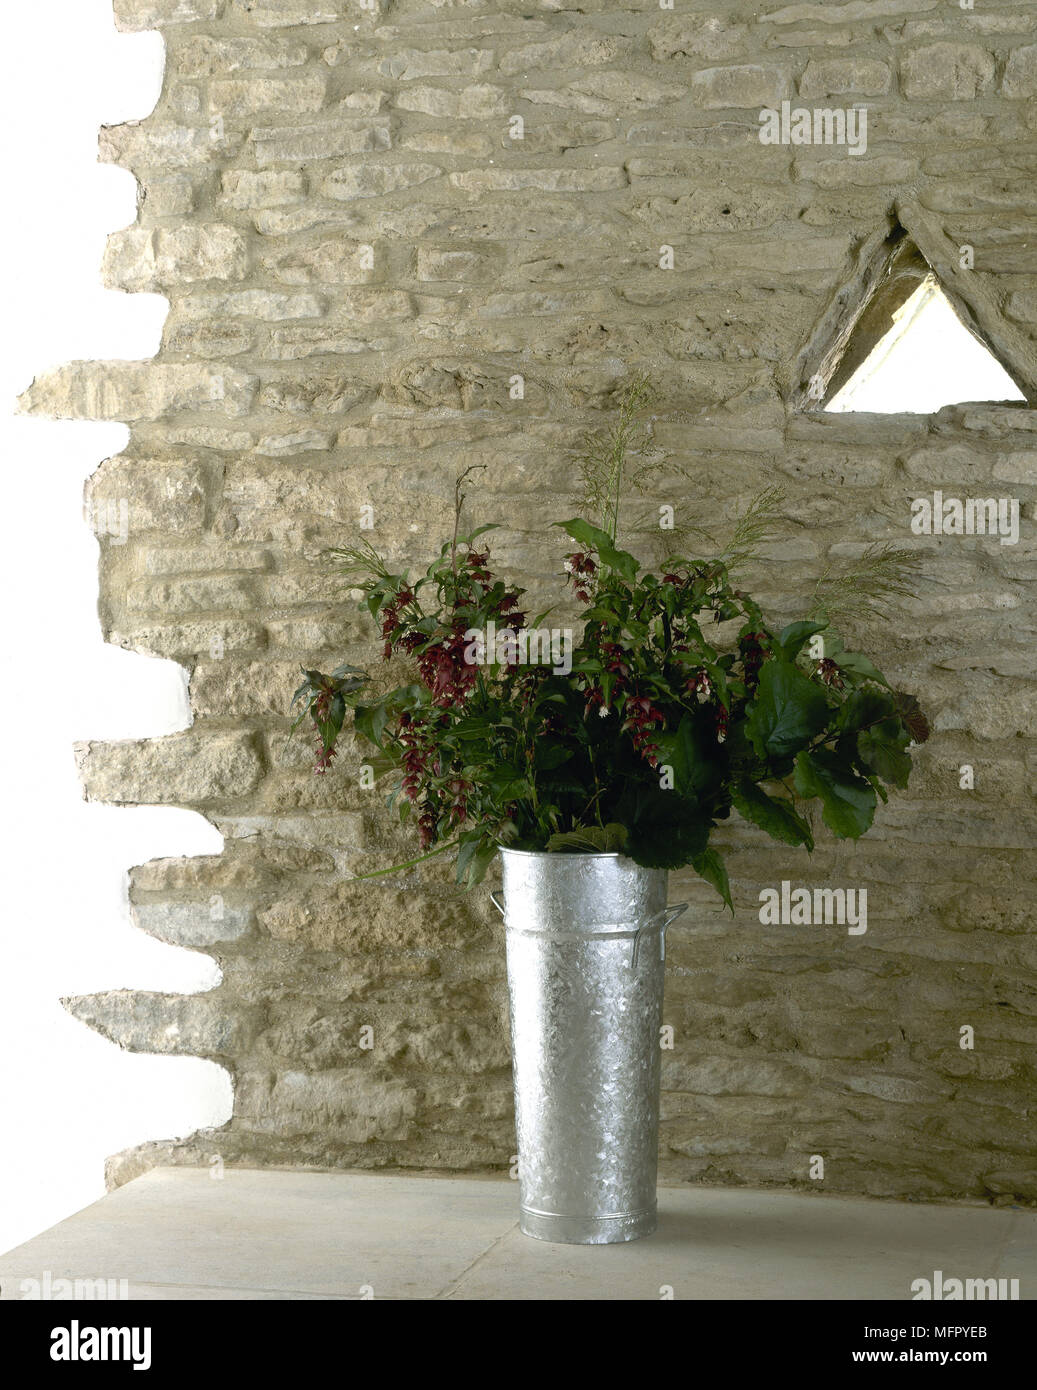 An exposed stone wall detail with a triangular window and a bouquet of flowers in a galvanized steel vase. - Stock Image